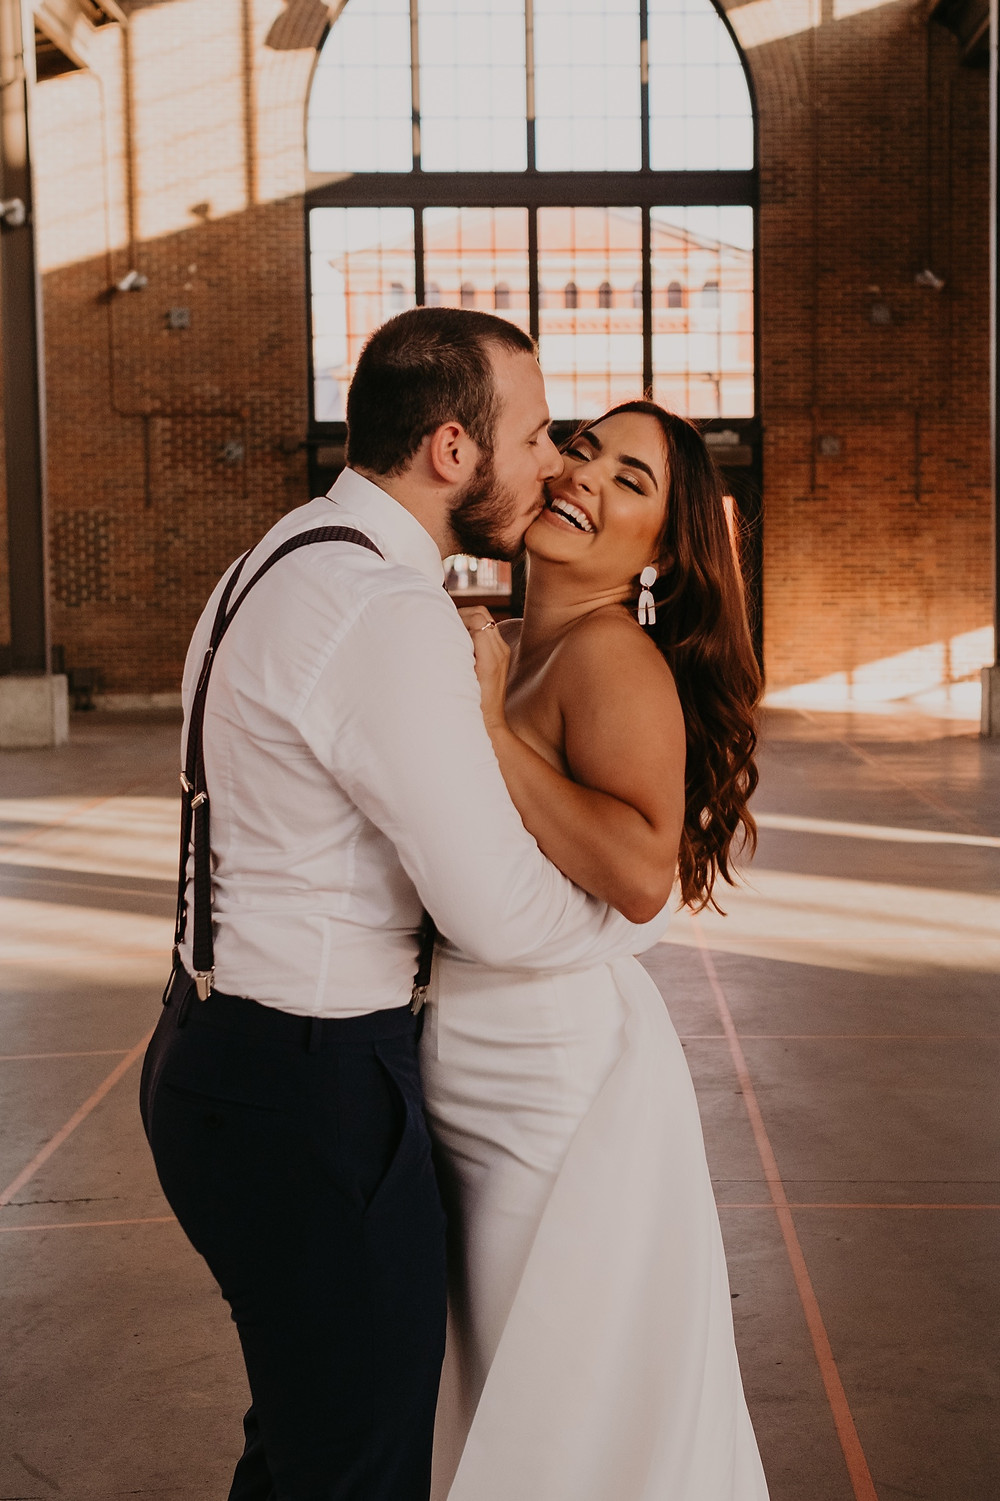 Eastern Market Detroit intimate wedding ceremony. Photographed by Nicole Leanne Photography.